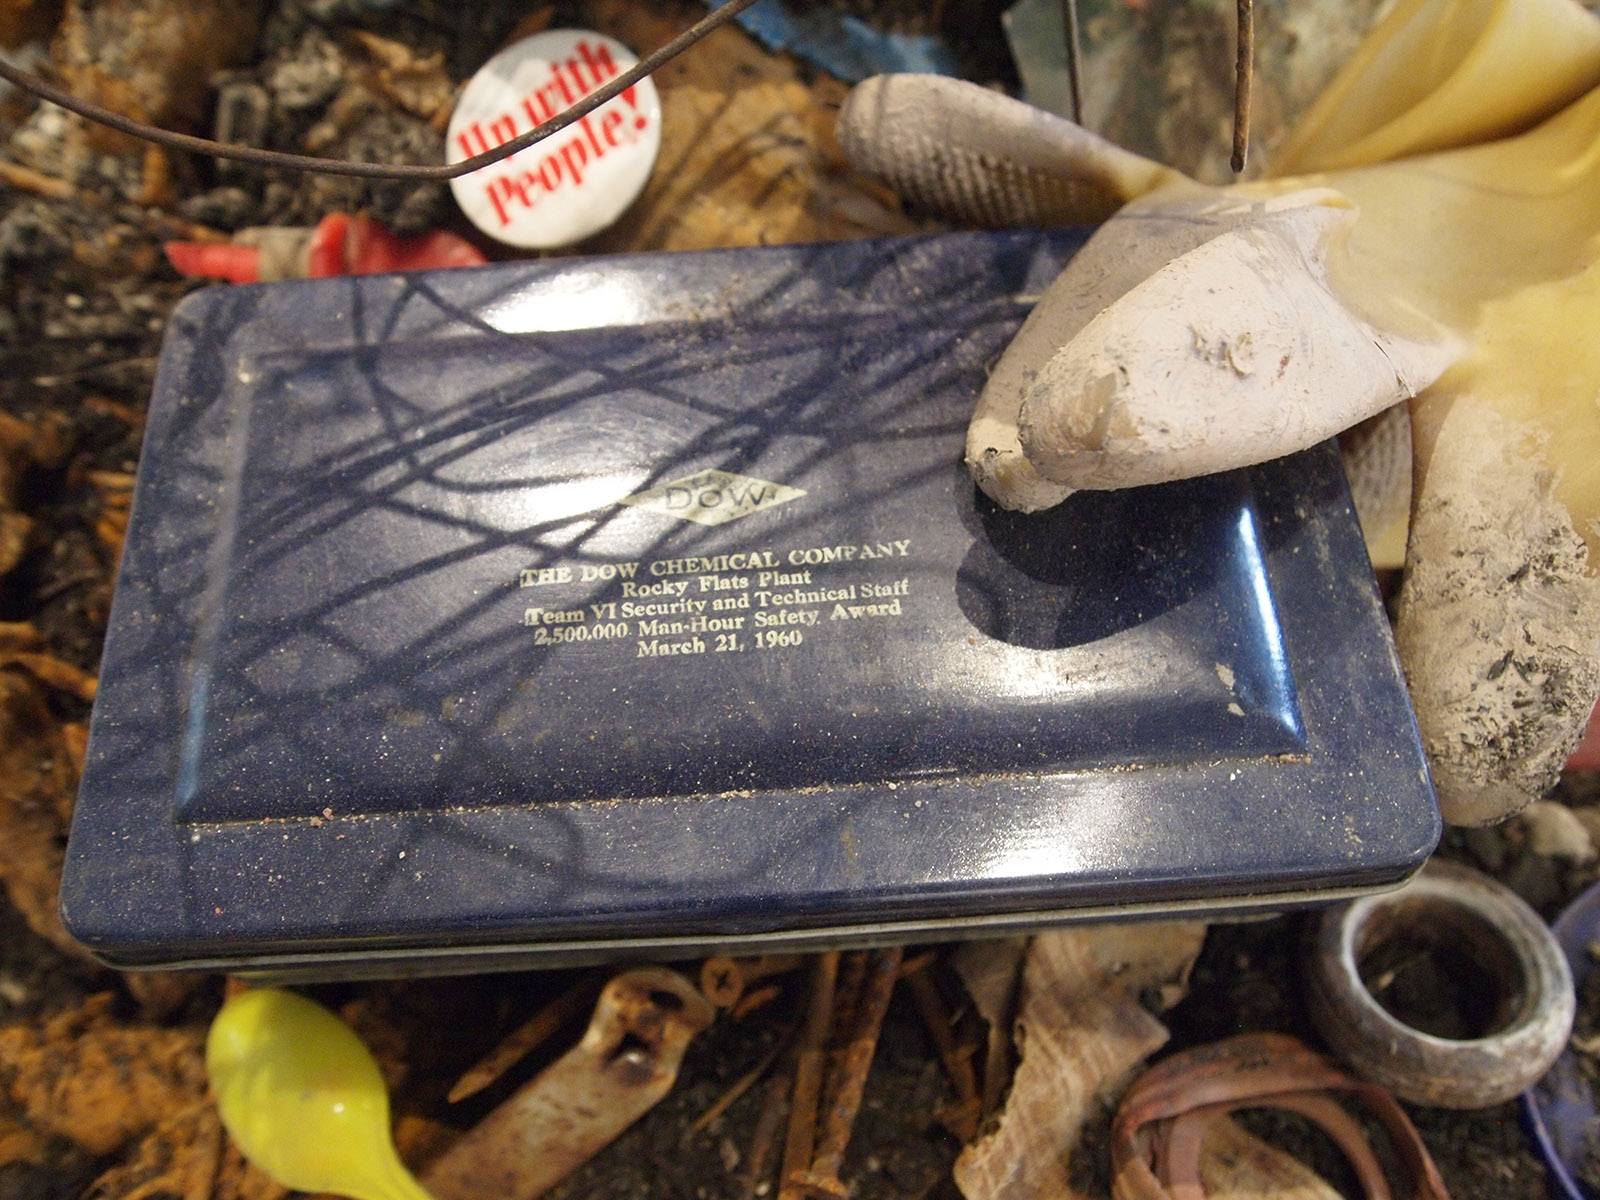 Installation detail showing a blue metal plaque from the Dow Chemical Company awarding Team 6 a 1960 safety award. A dirty rubber glove and and other detritus, including a soft-focus activist pin reading